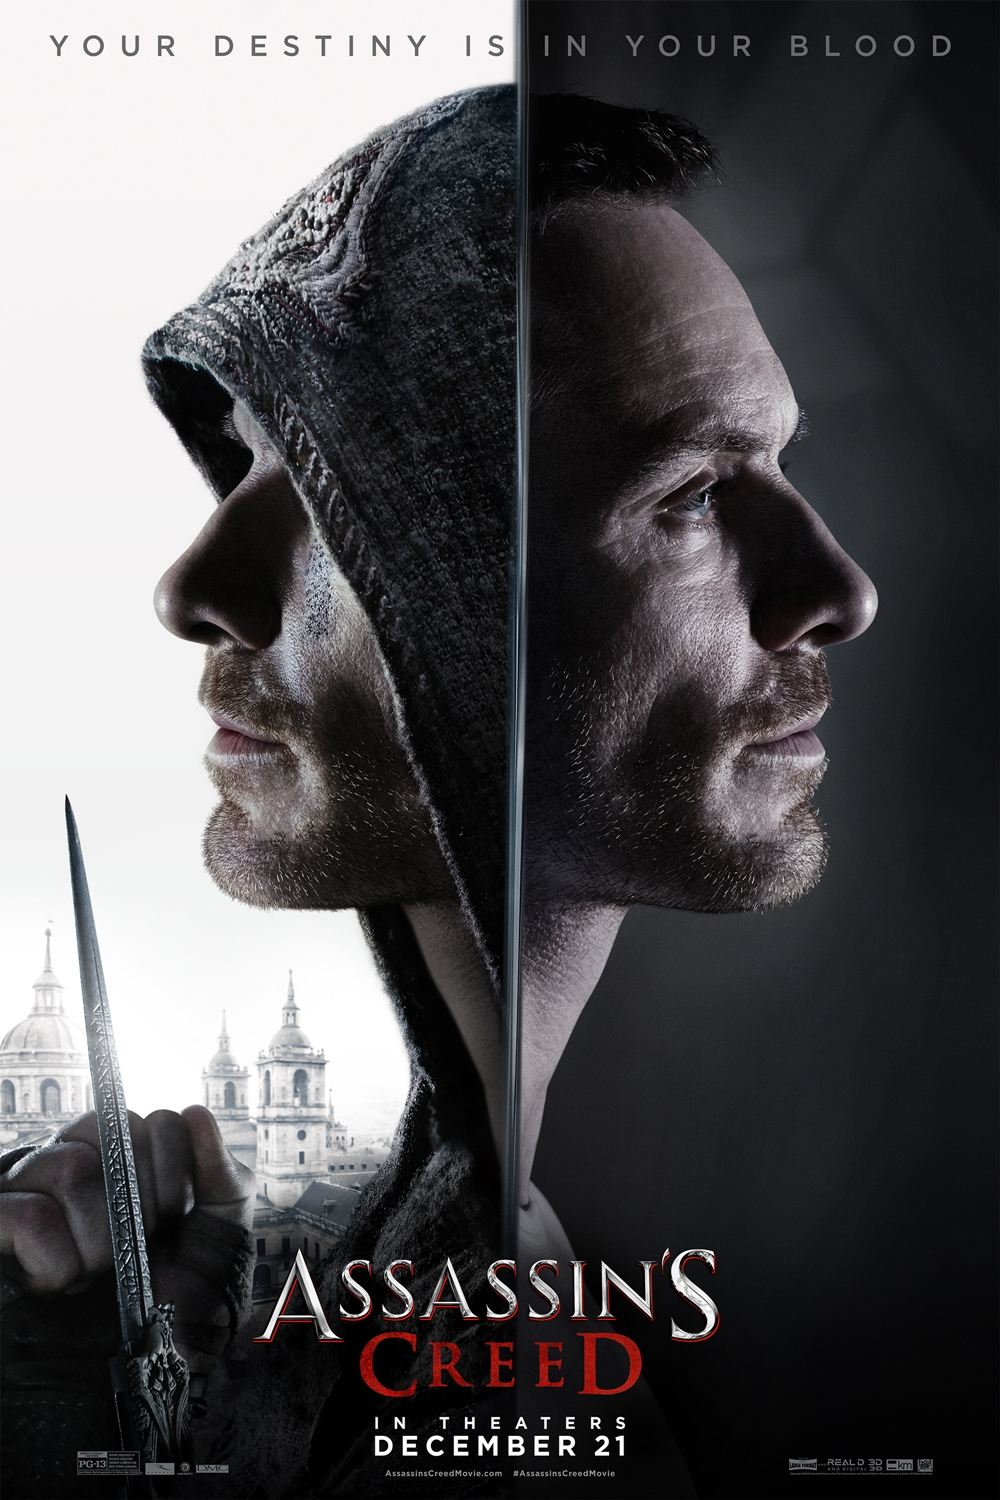 Poster for Assassin's Creed